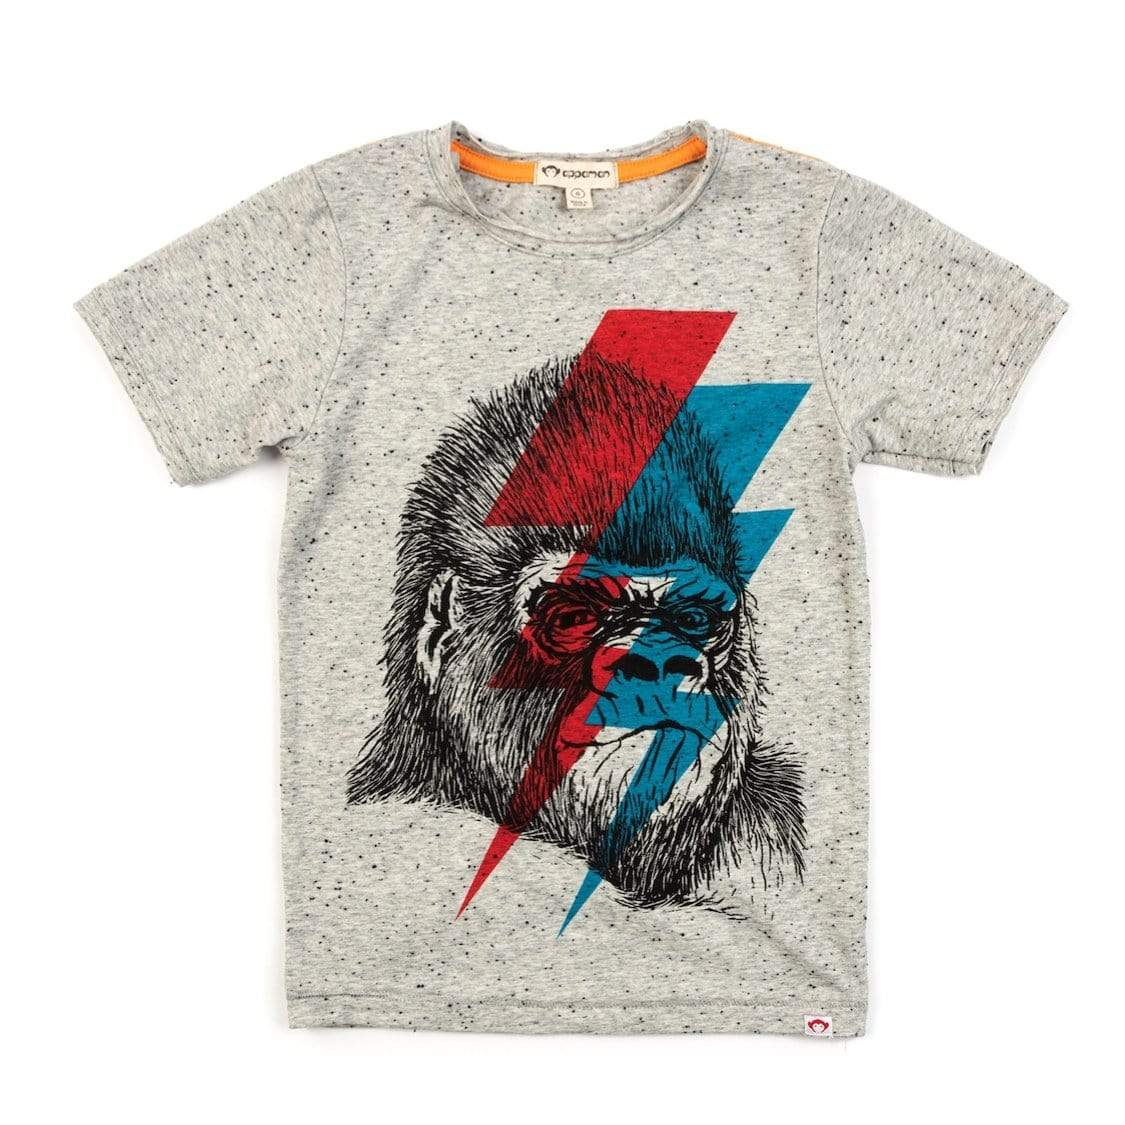 V1T7 Appaman Go-Go-Rilla Graphic Tee - Heather Grey Short Sleeve Shirts Appaman